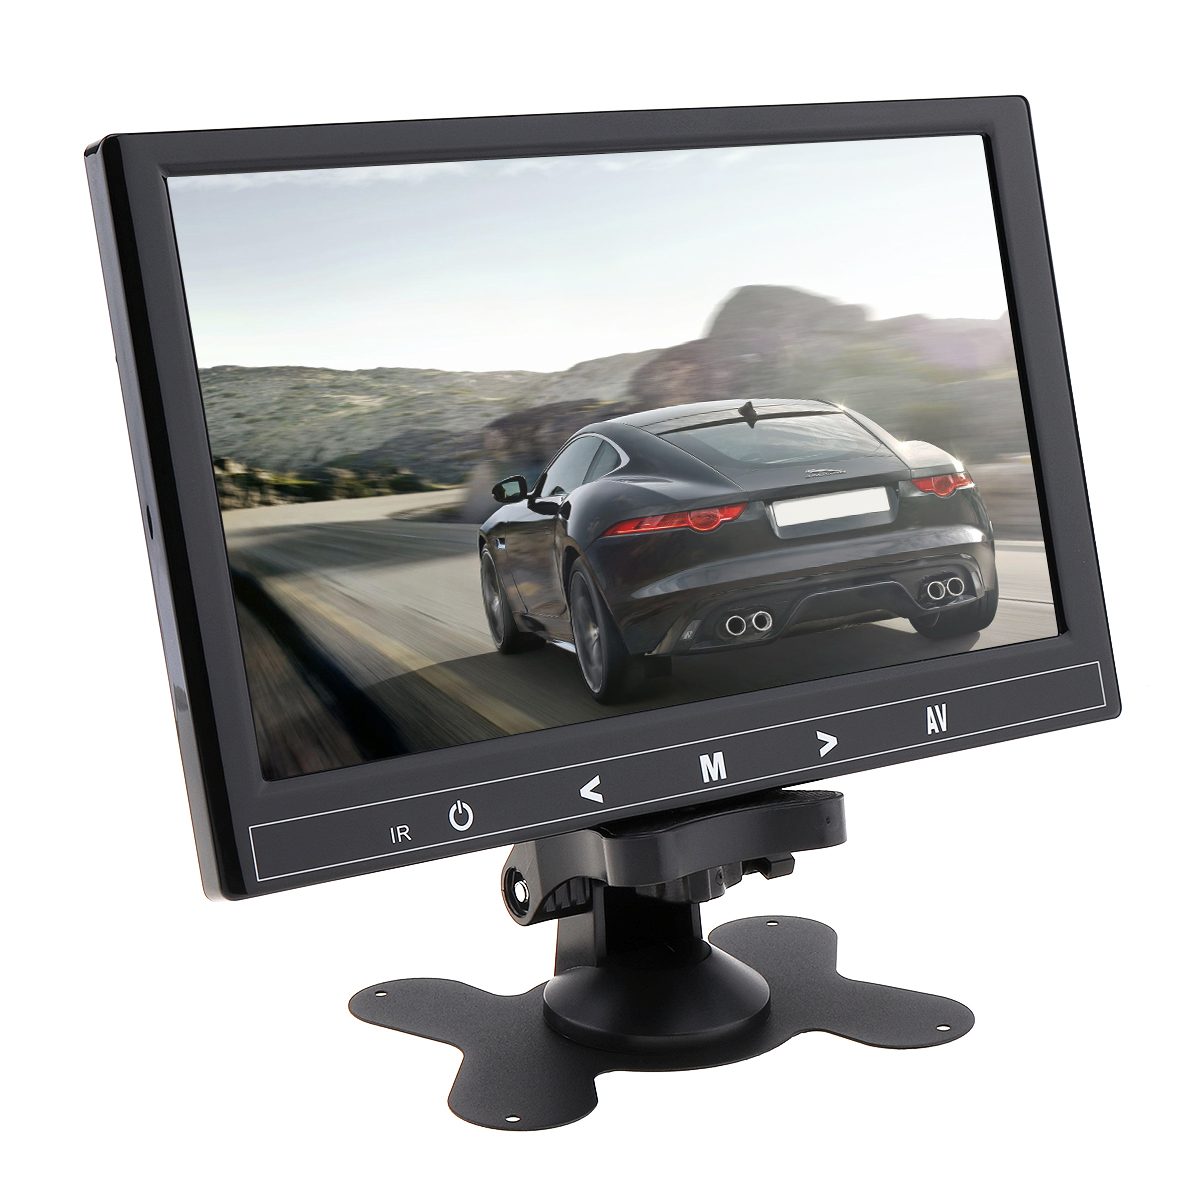 9 Inch HD IPS 1024 600 TFT LCD Color Multifunction Car Headrest Monitor support HDMI VGA AV Wireless Mobile Phone Mirror Link in Car Monitors from Automobiles Motorcycles